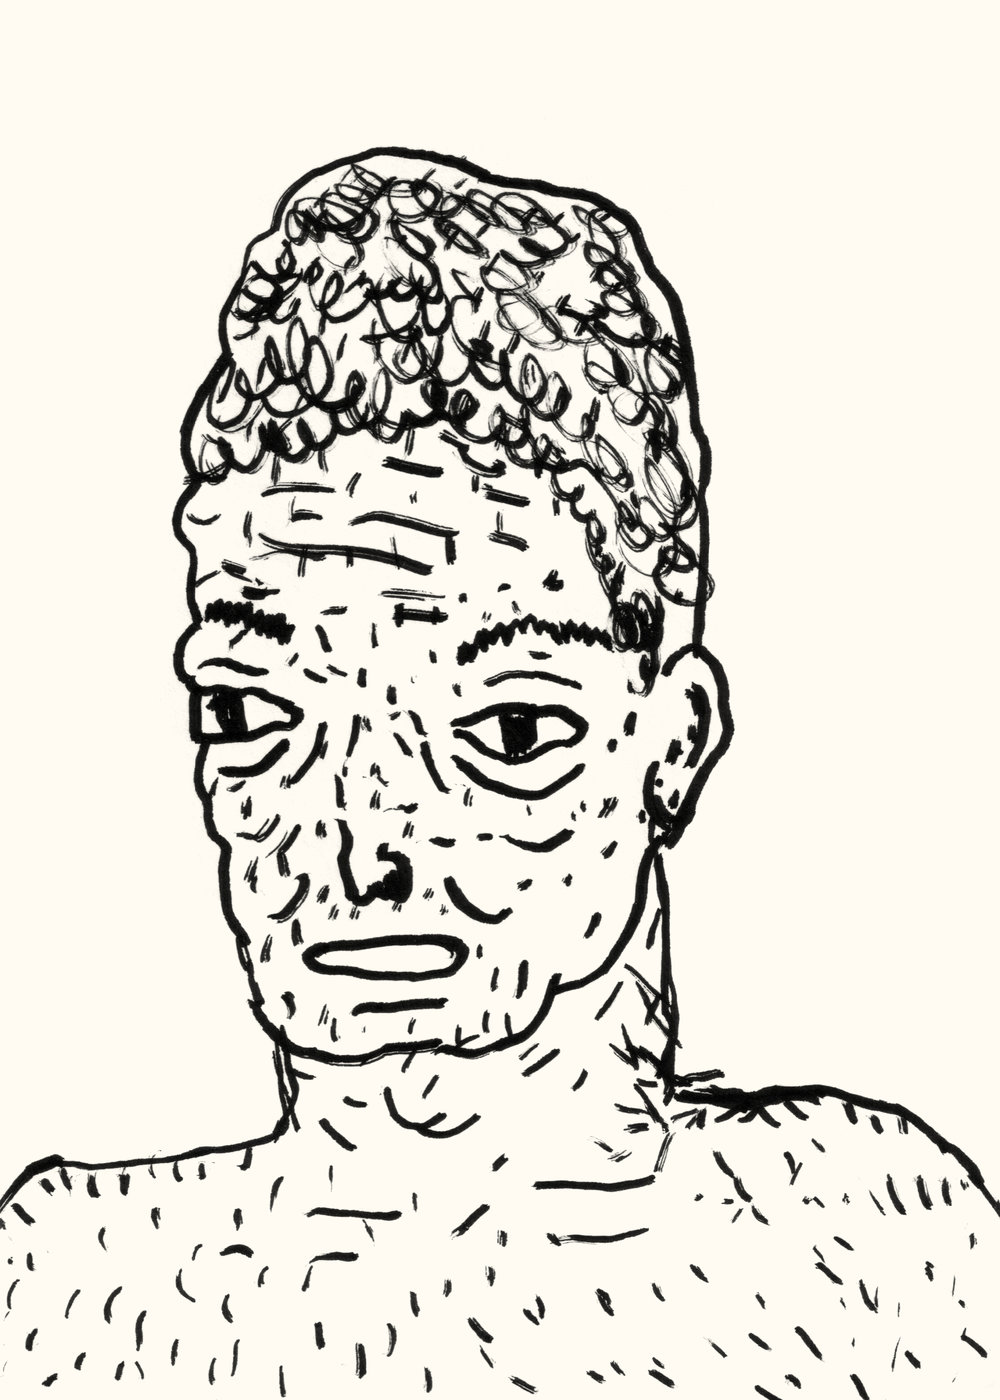 drawings_portrait_a_180dpi.jpg